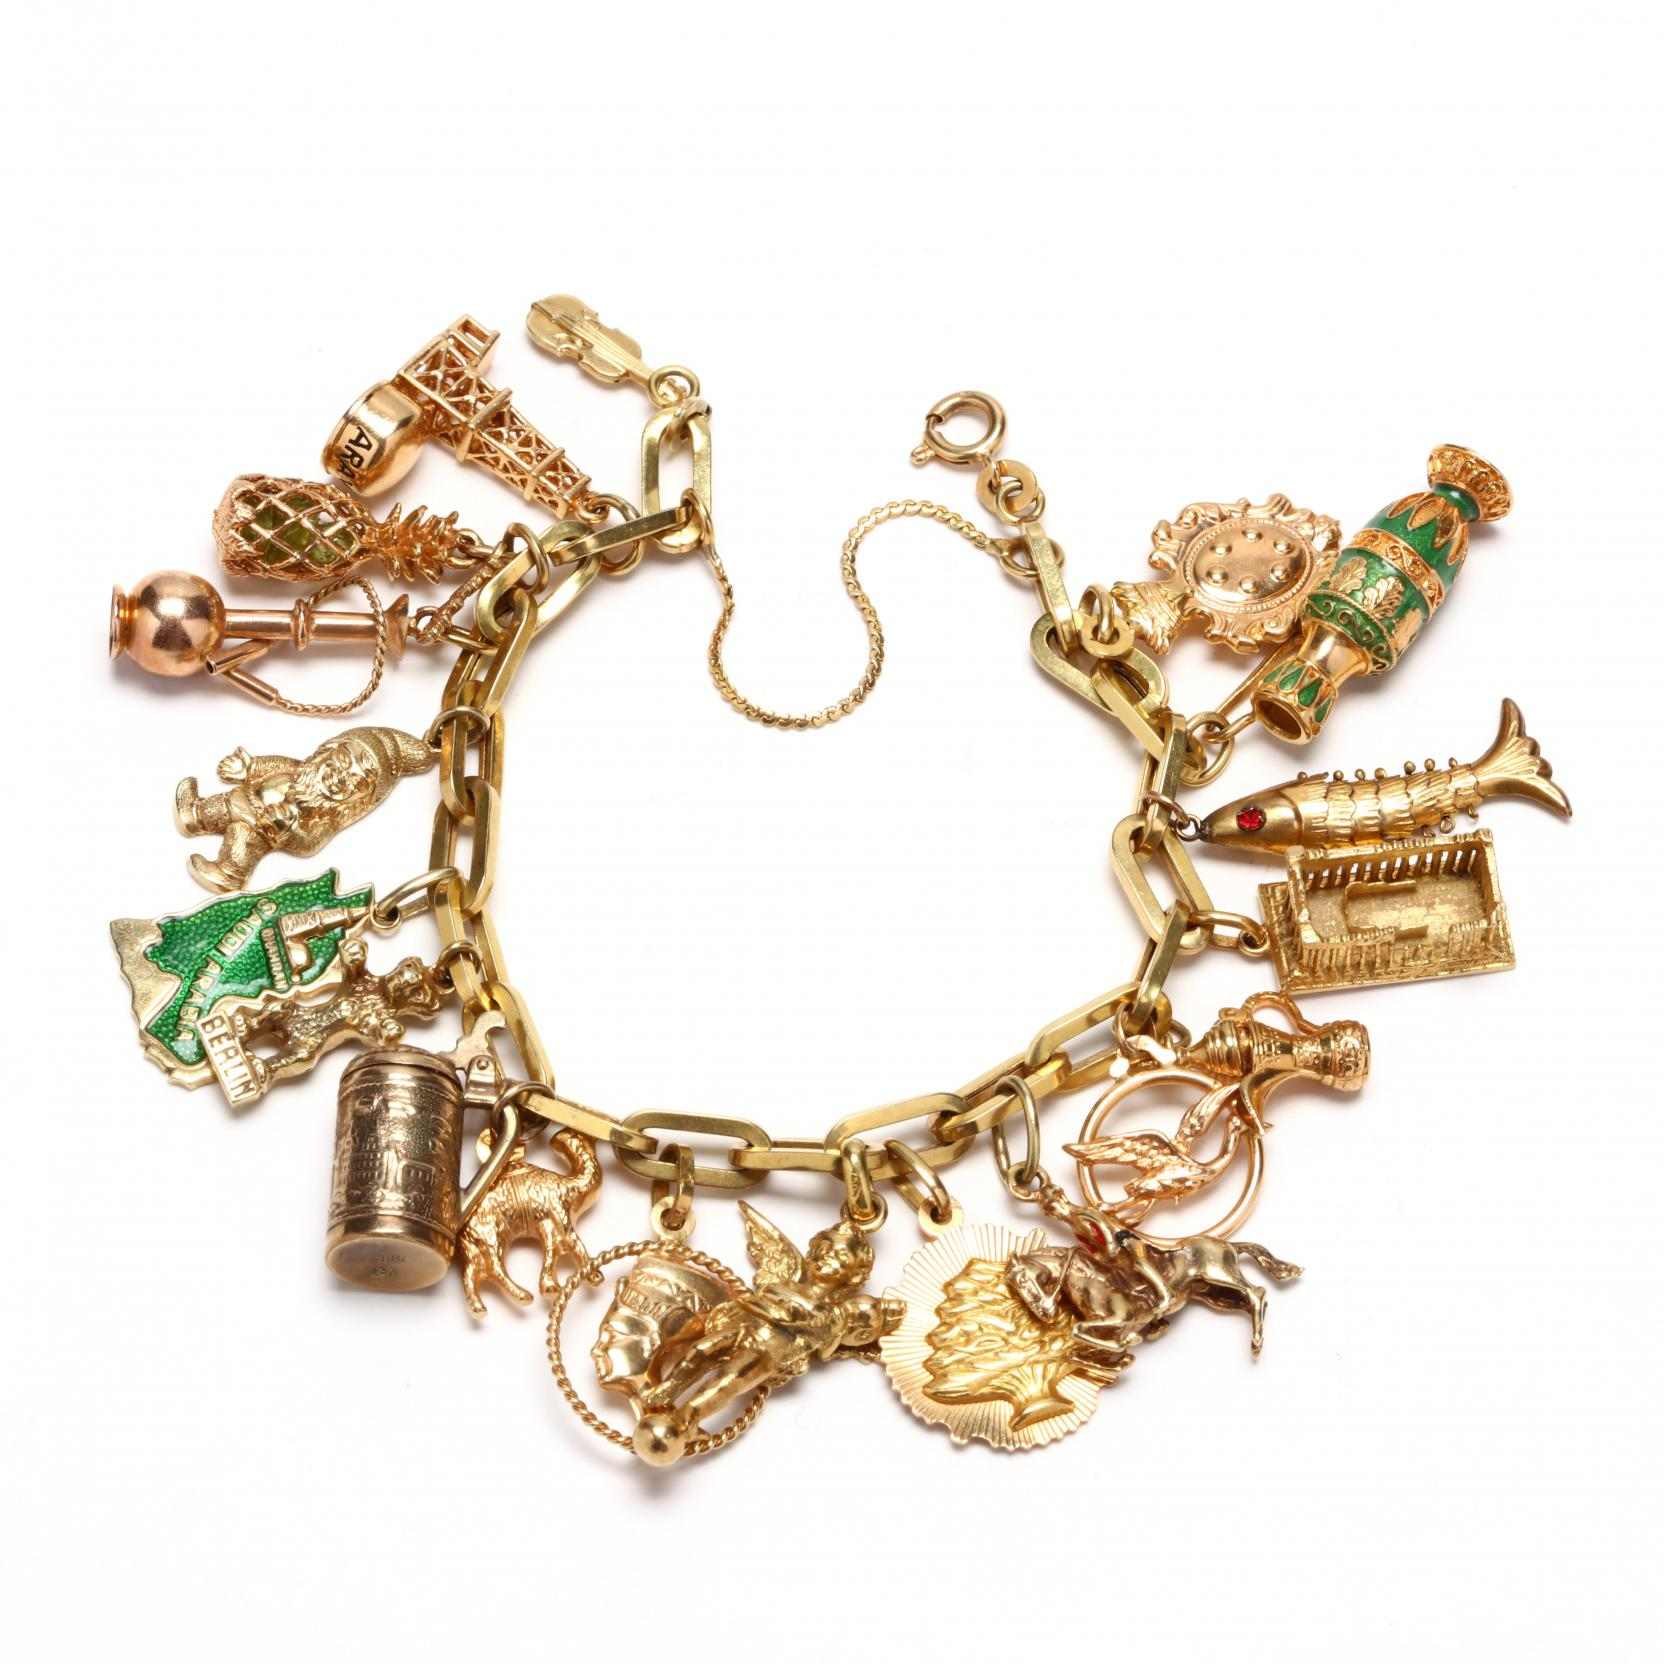 gold-charm-bracelet-with-19-attached-charms